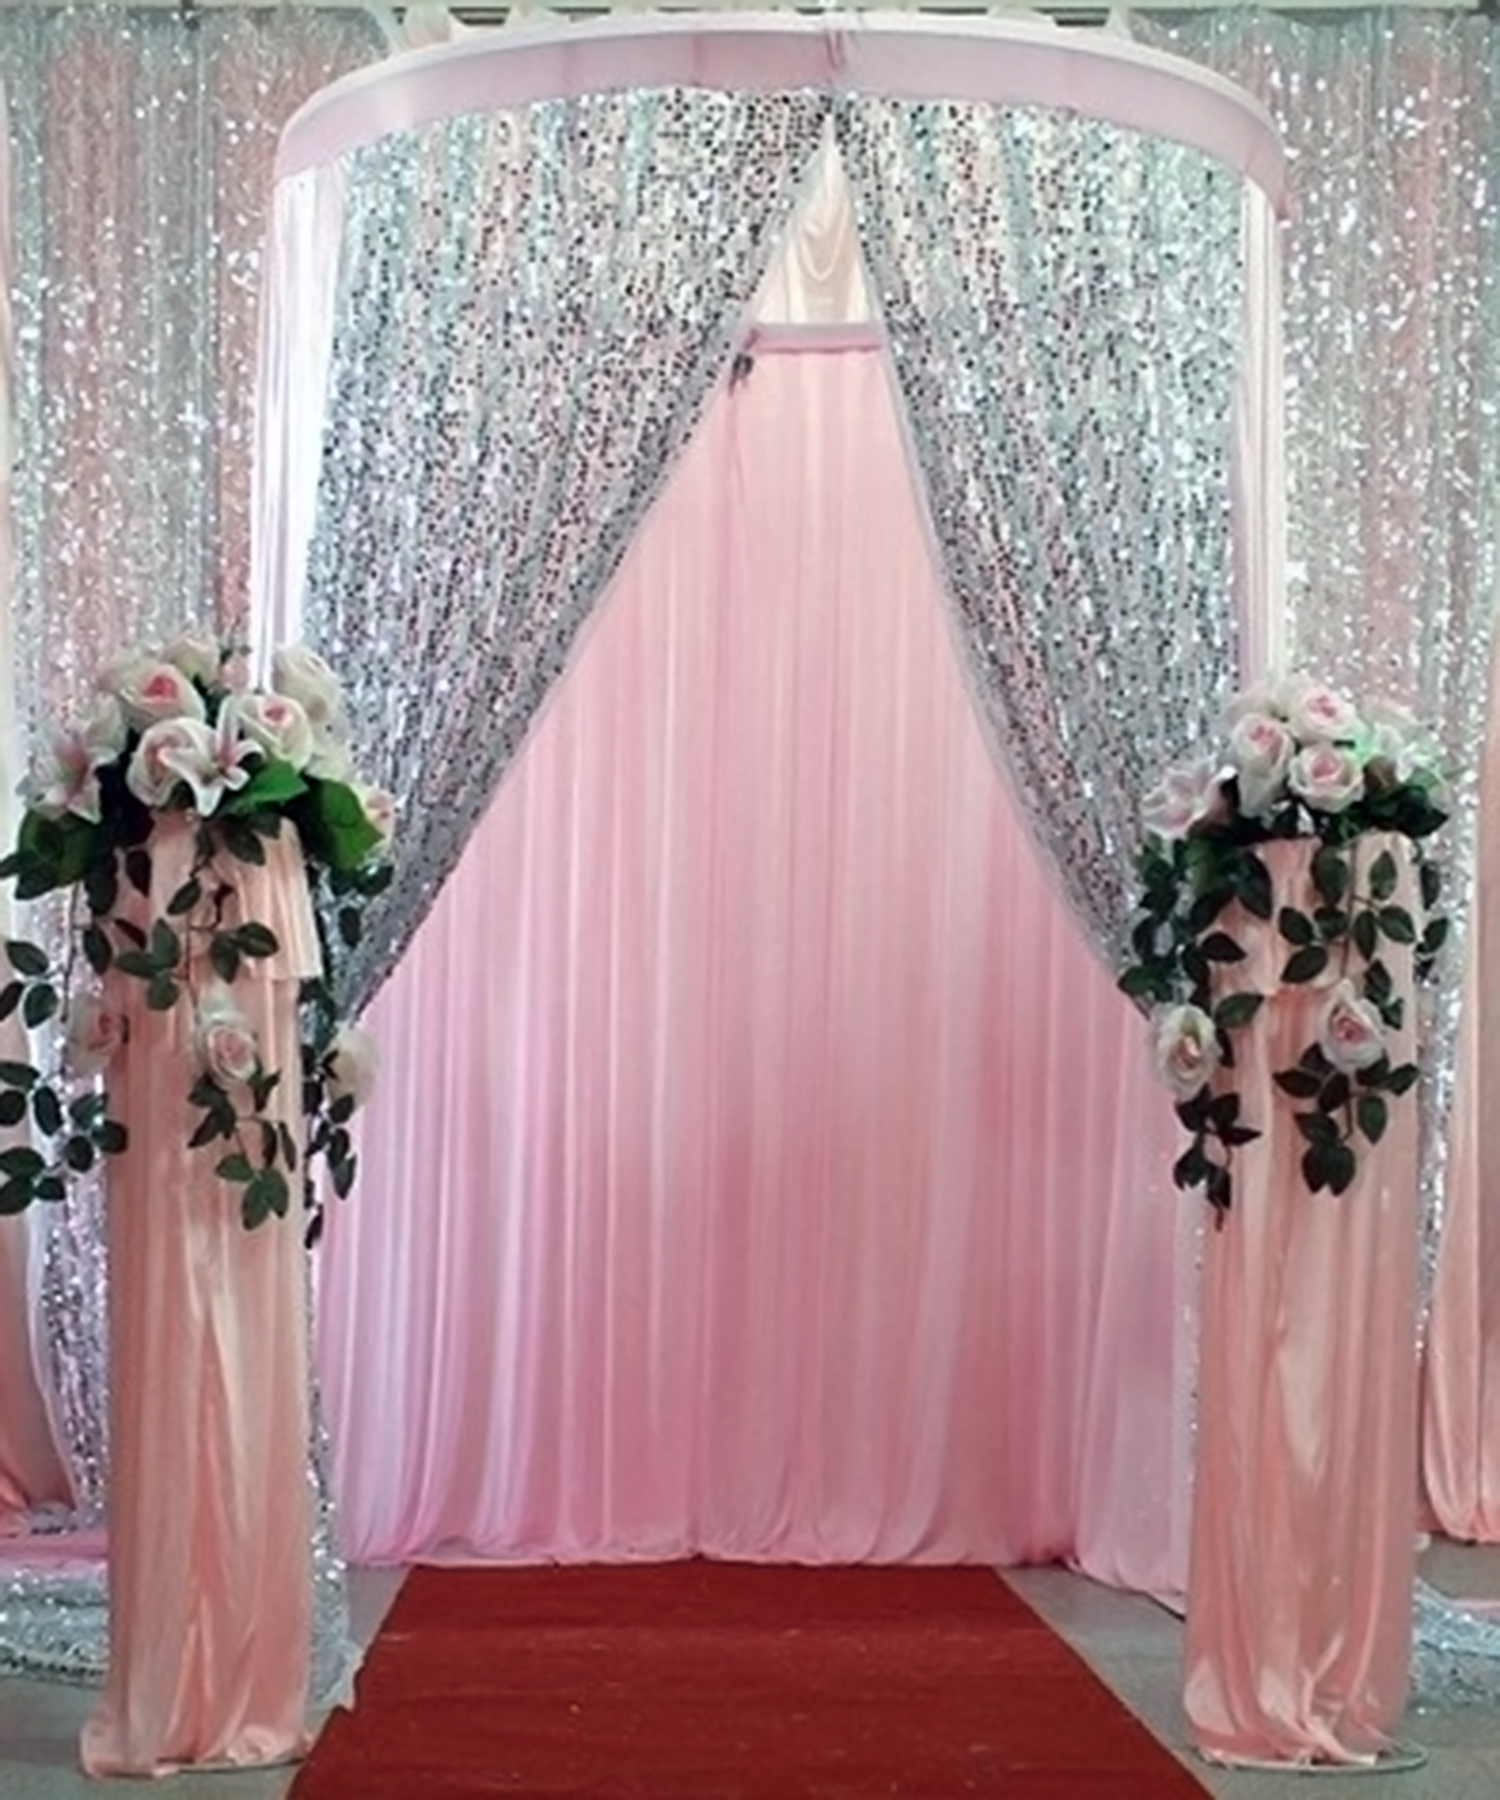 backdrop with curved fabric and sequin fabric accents